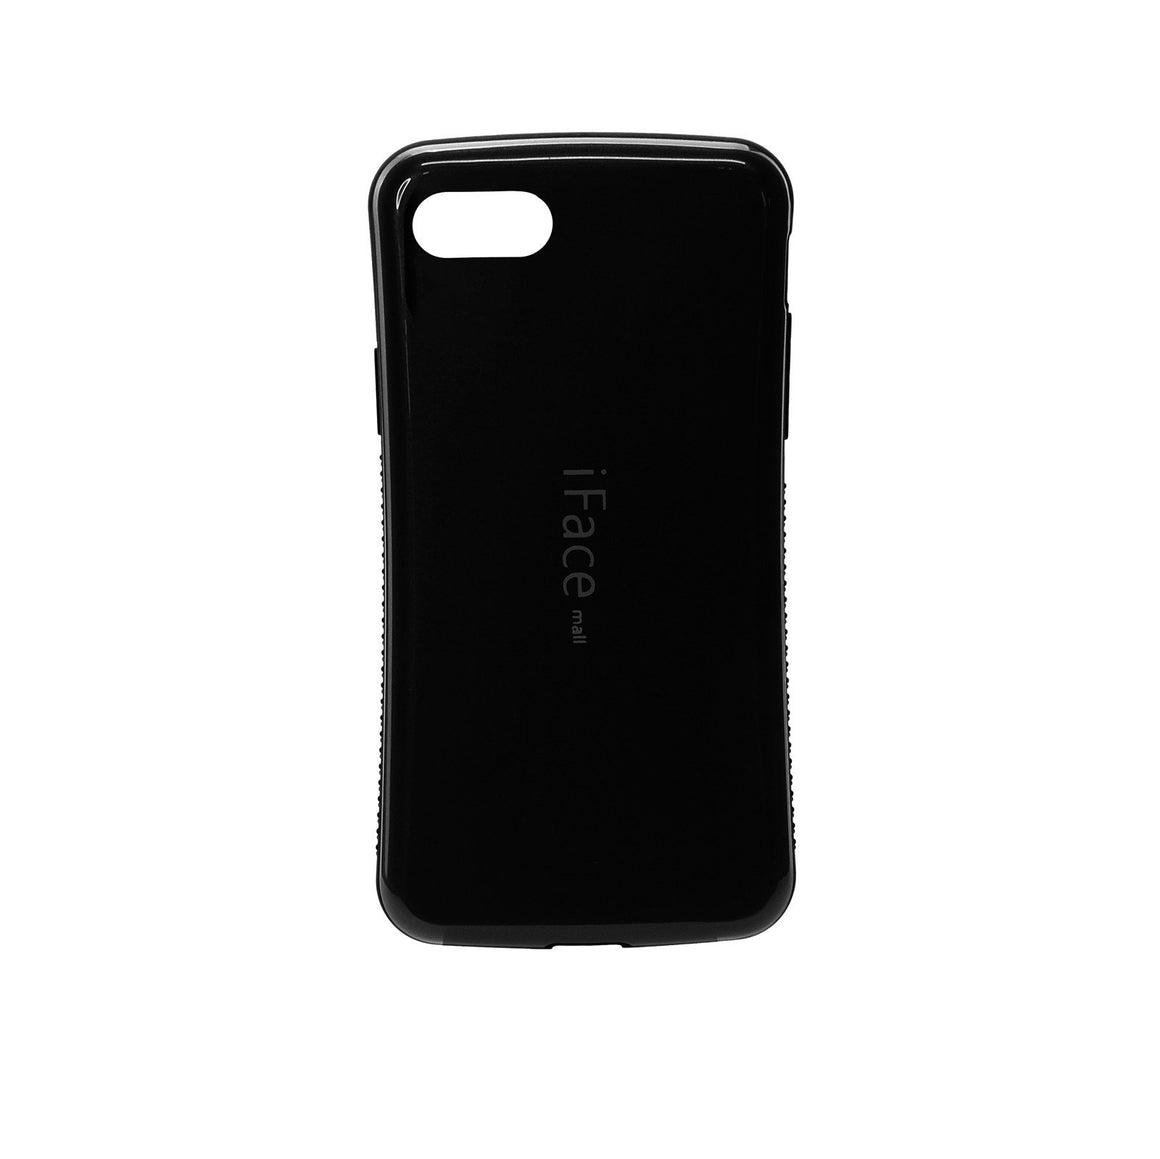 Authentic iPhone 4 iFace Heavy Duty Bumper Shockproof Hard case [Drop Protection] - caseoftheday.com.au